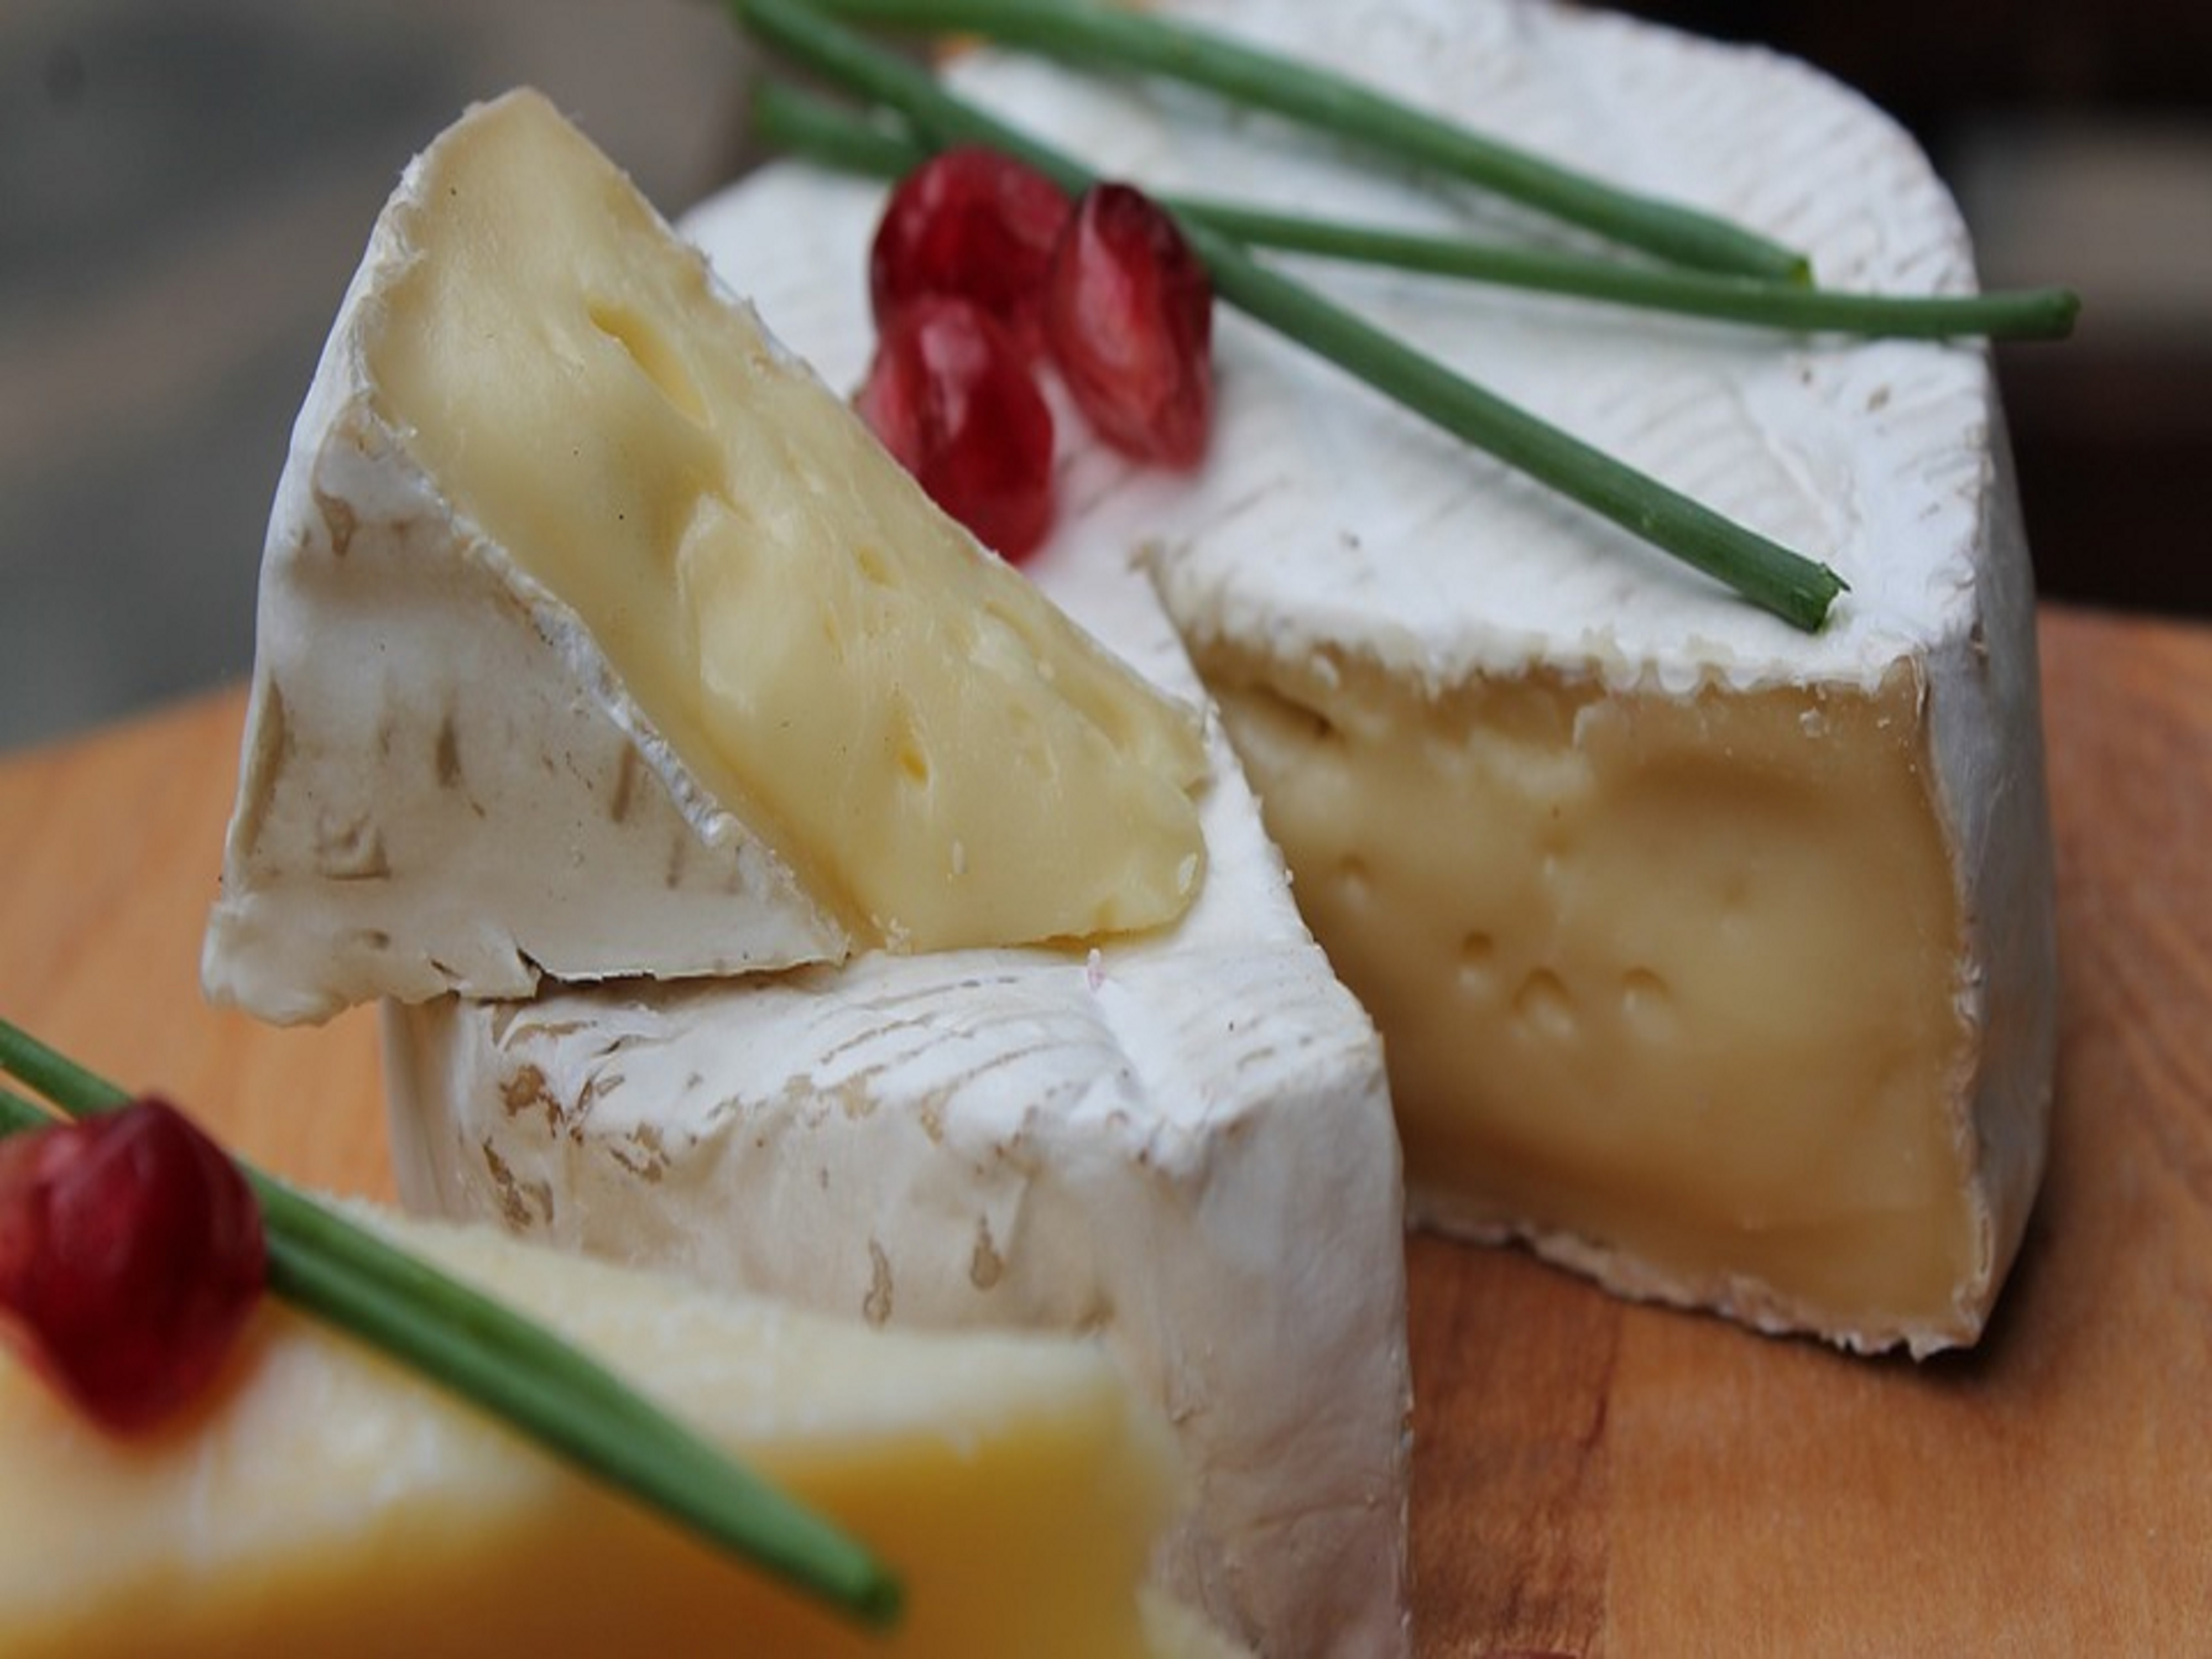 cheese-never-tasted-so-better-leamigo